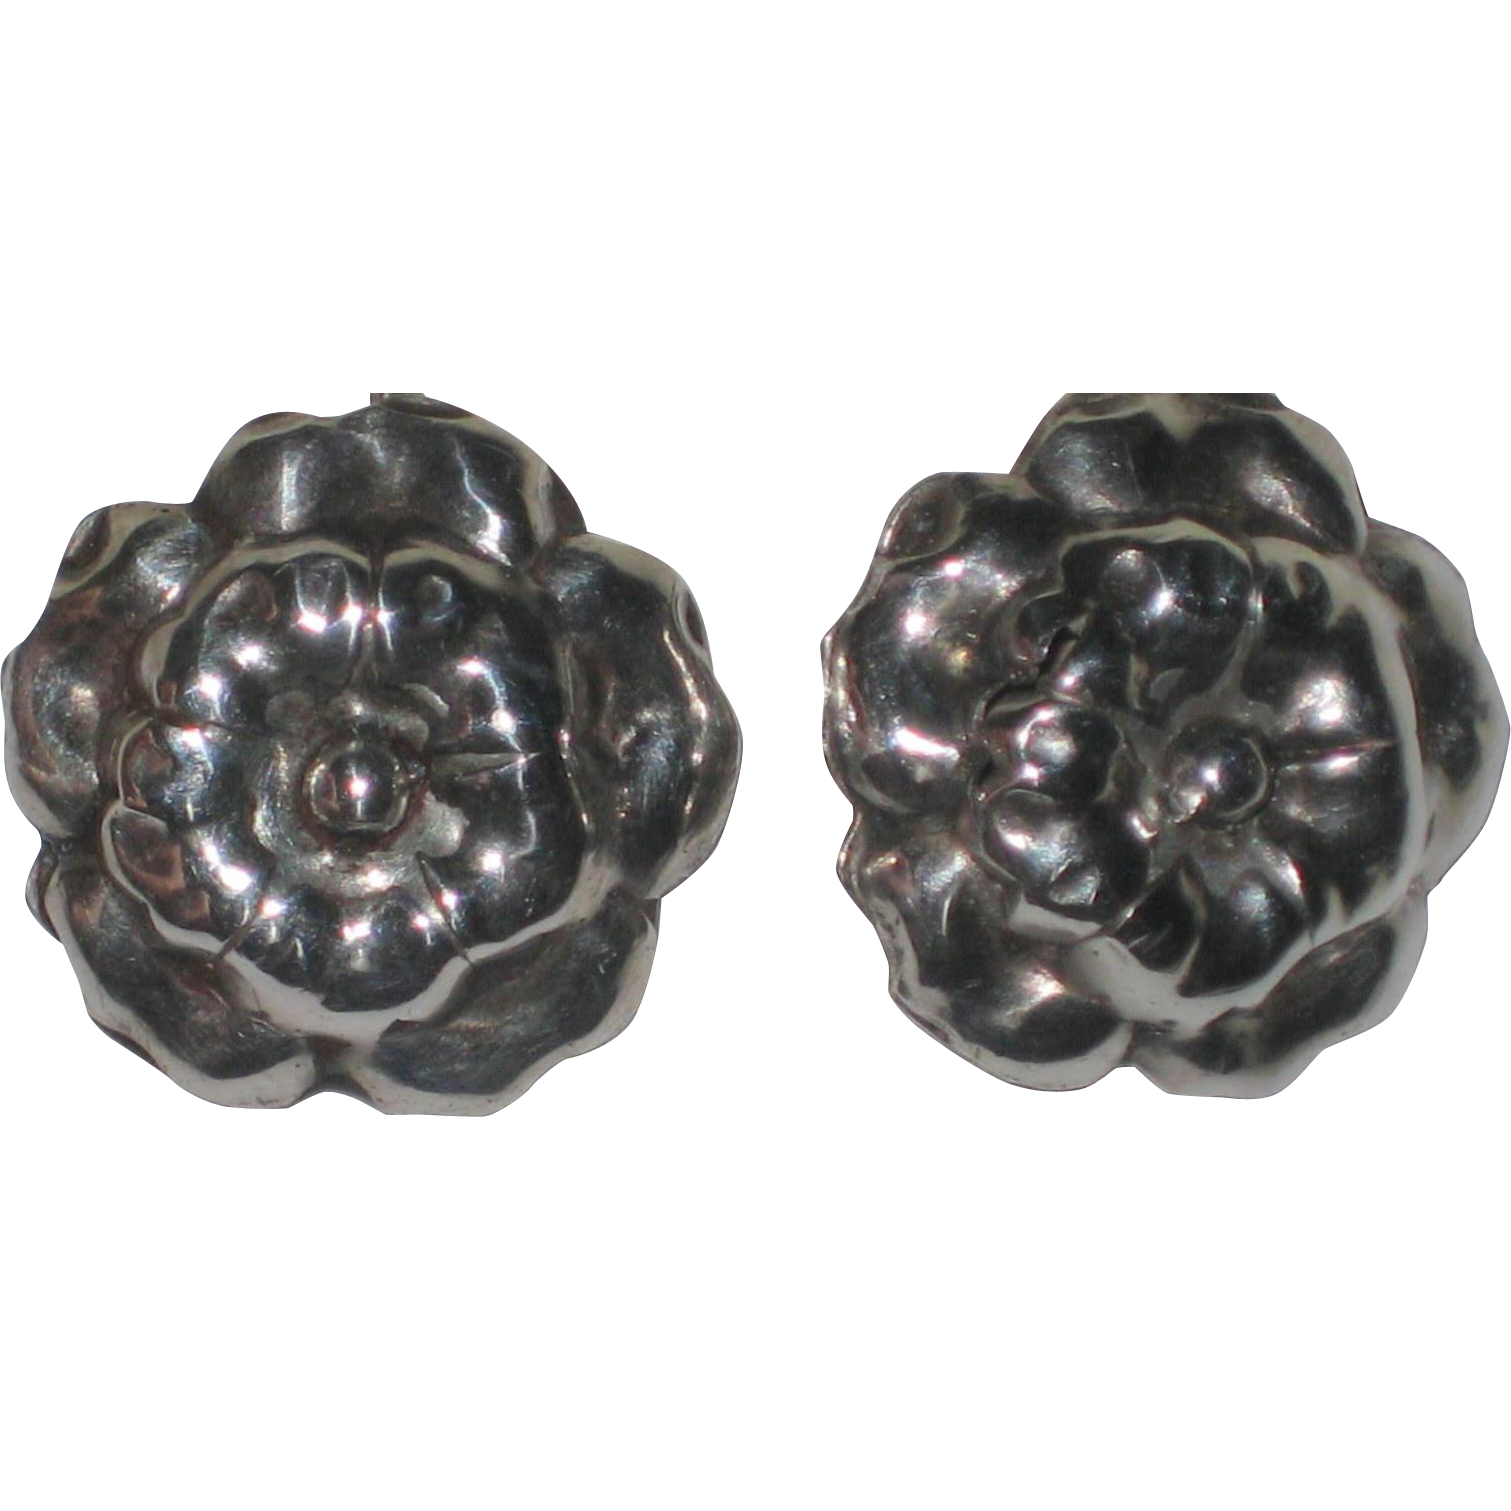 1940's Sterling Silver Screw-back Earrings  - Flower or Puffed Rose